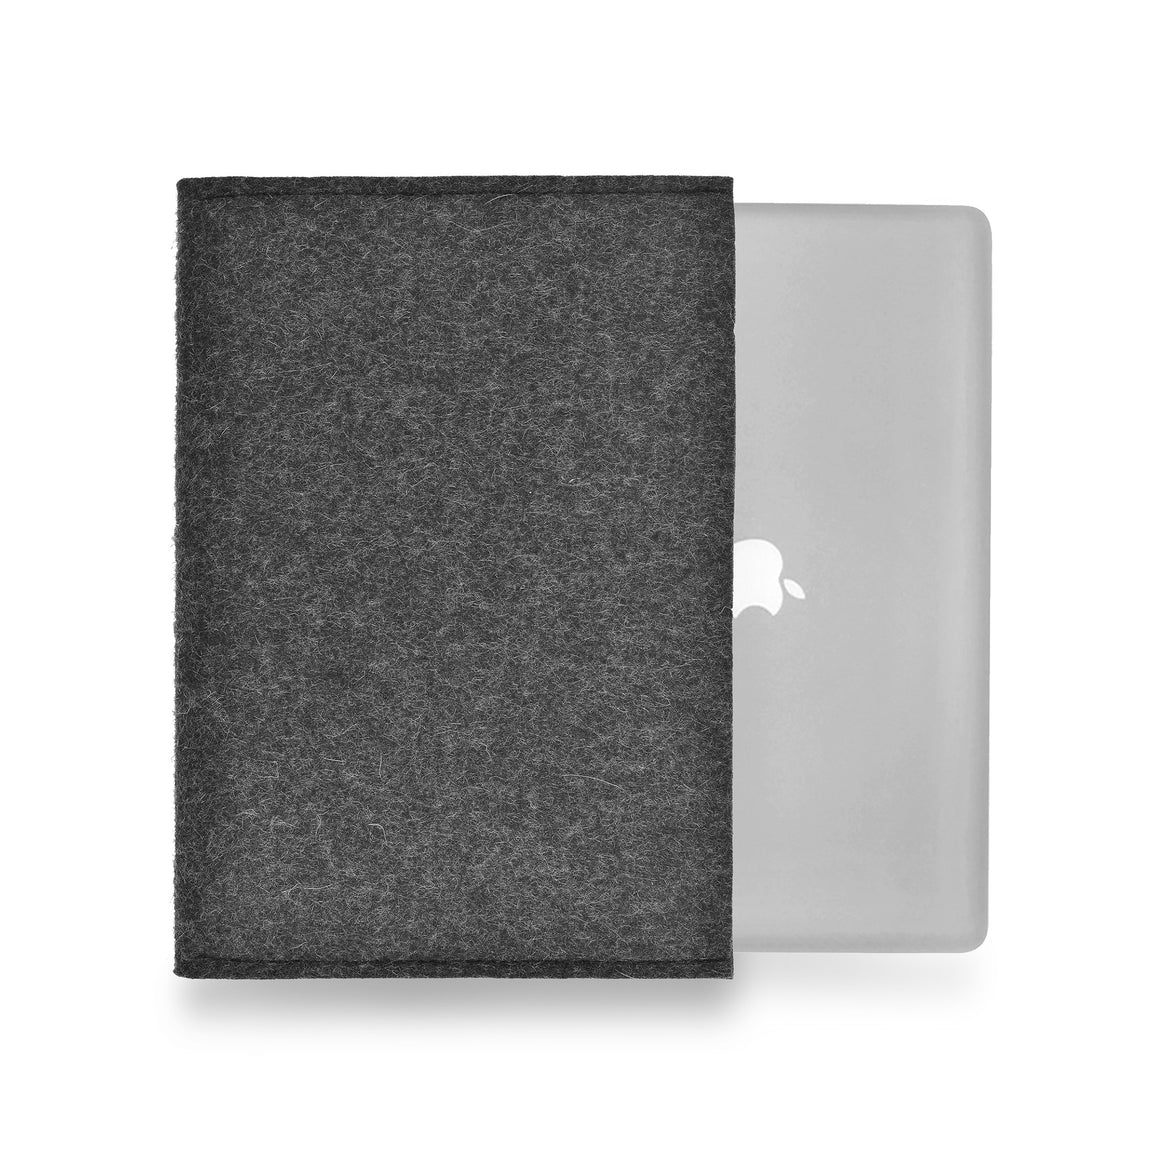 MacBook 12 inch Wool Felt Charcoal Landscape - Wrappers UK